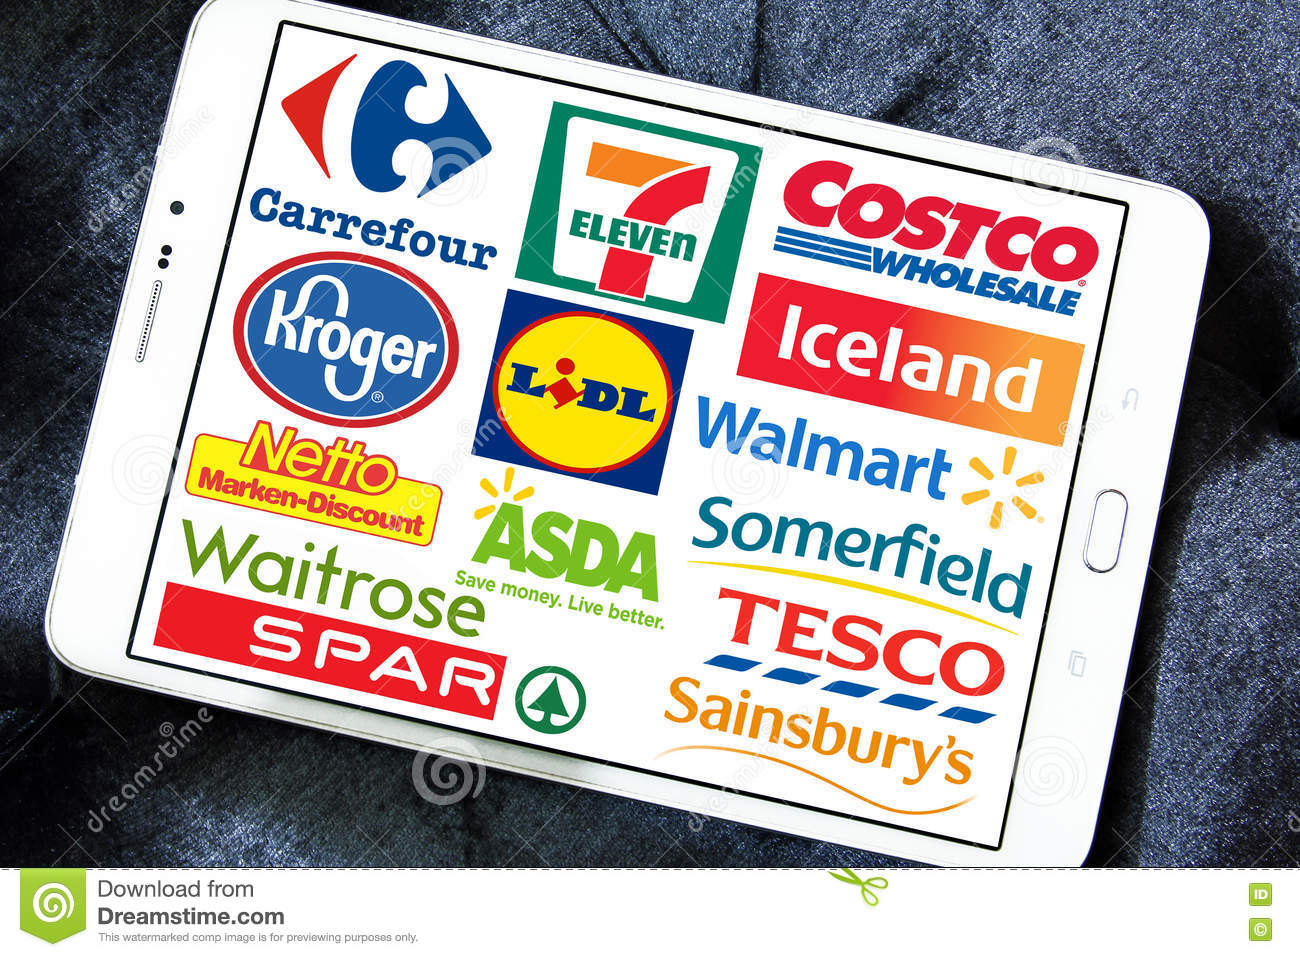 Supermarket Chains And Retail Brands And Logos Editorial